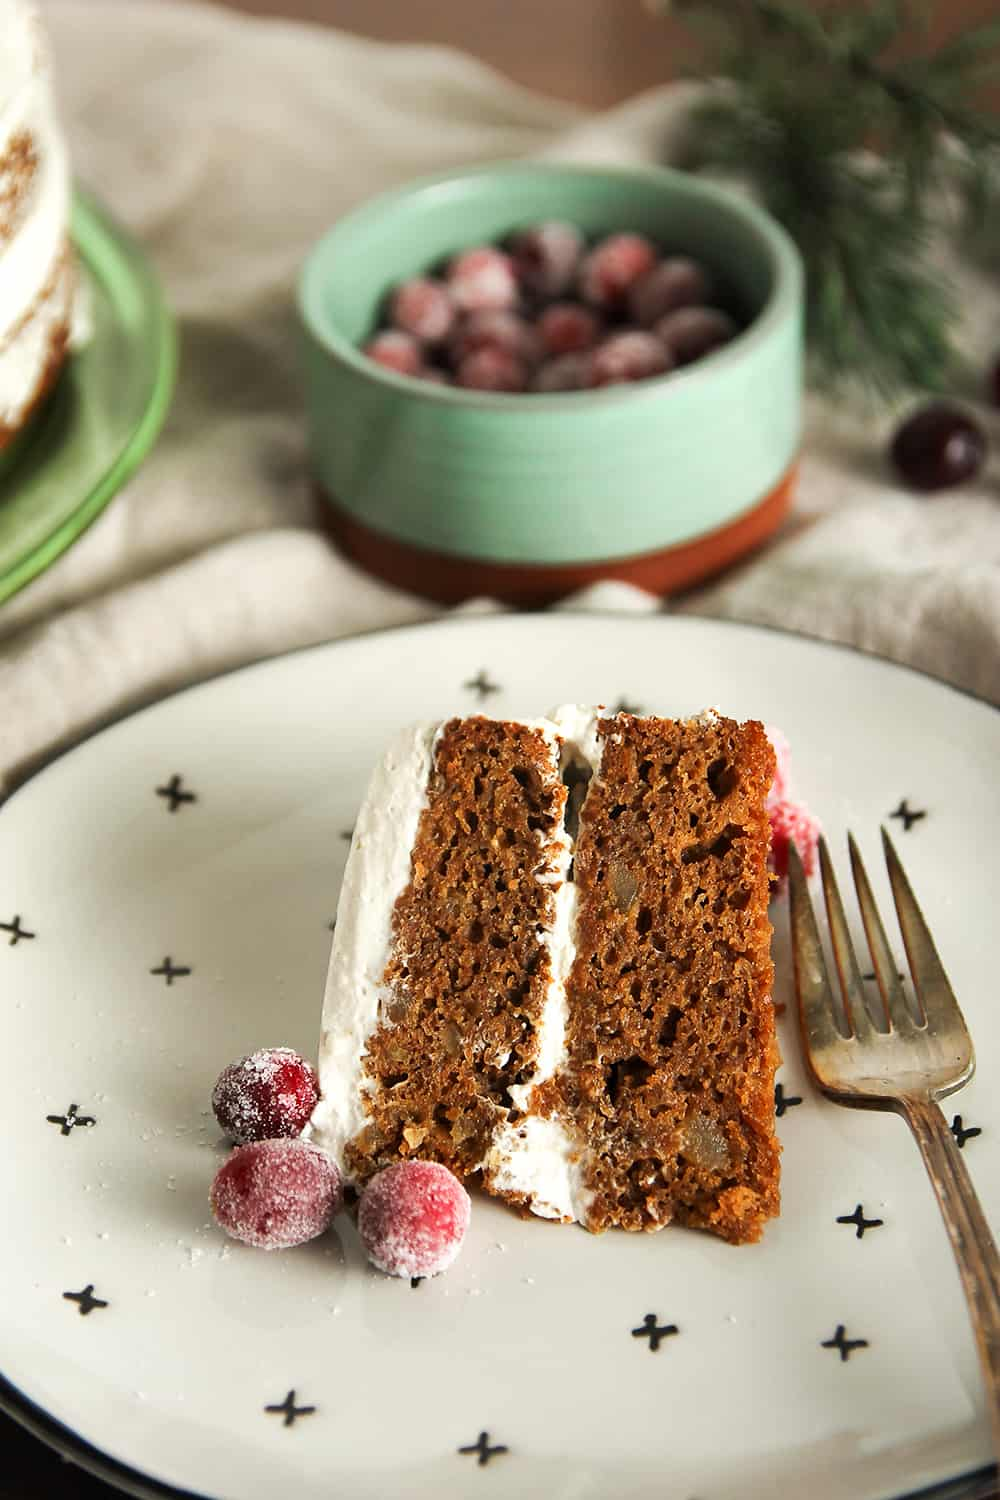 Gingerbread Layer Cake is a wonderfully festive dessert for your holiday parties